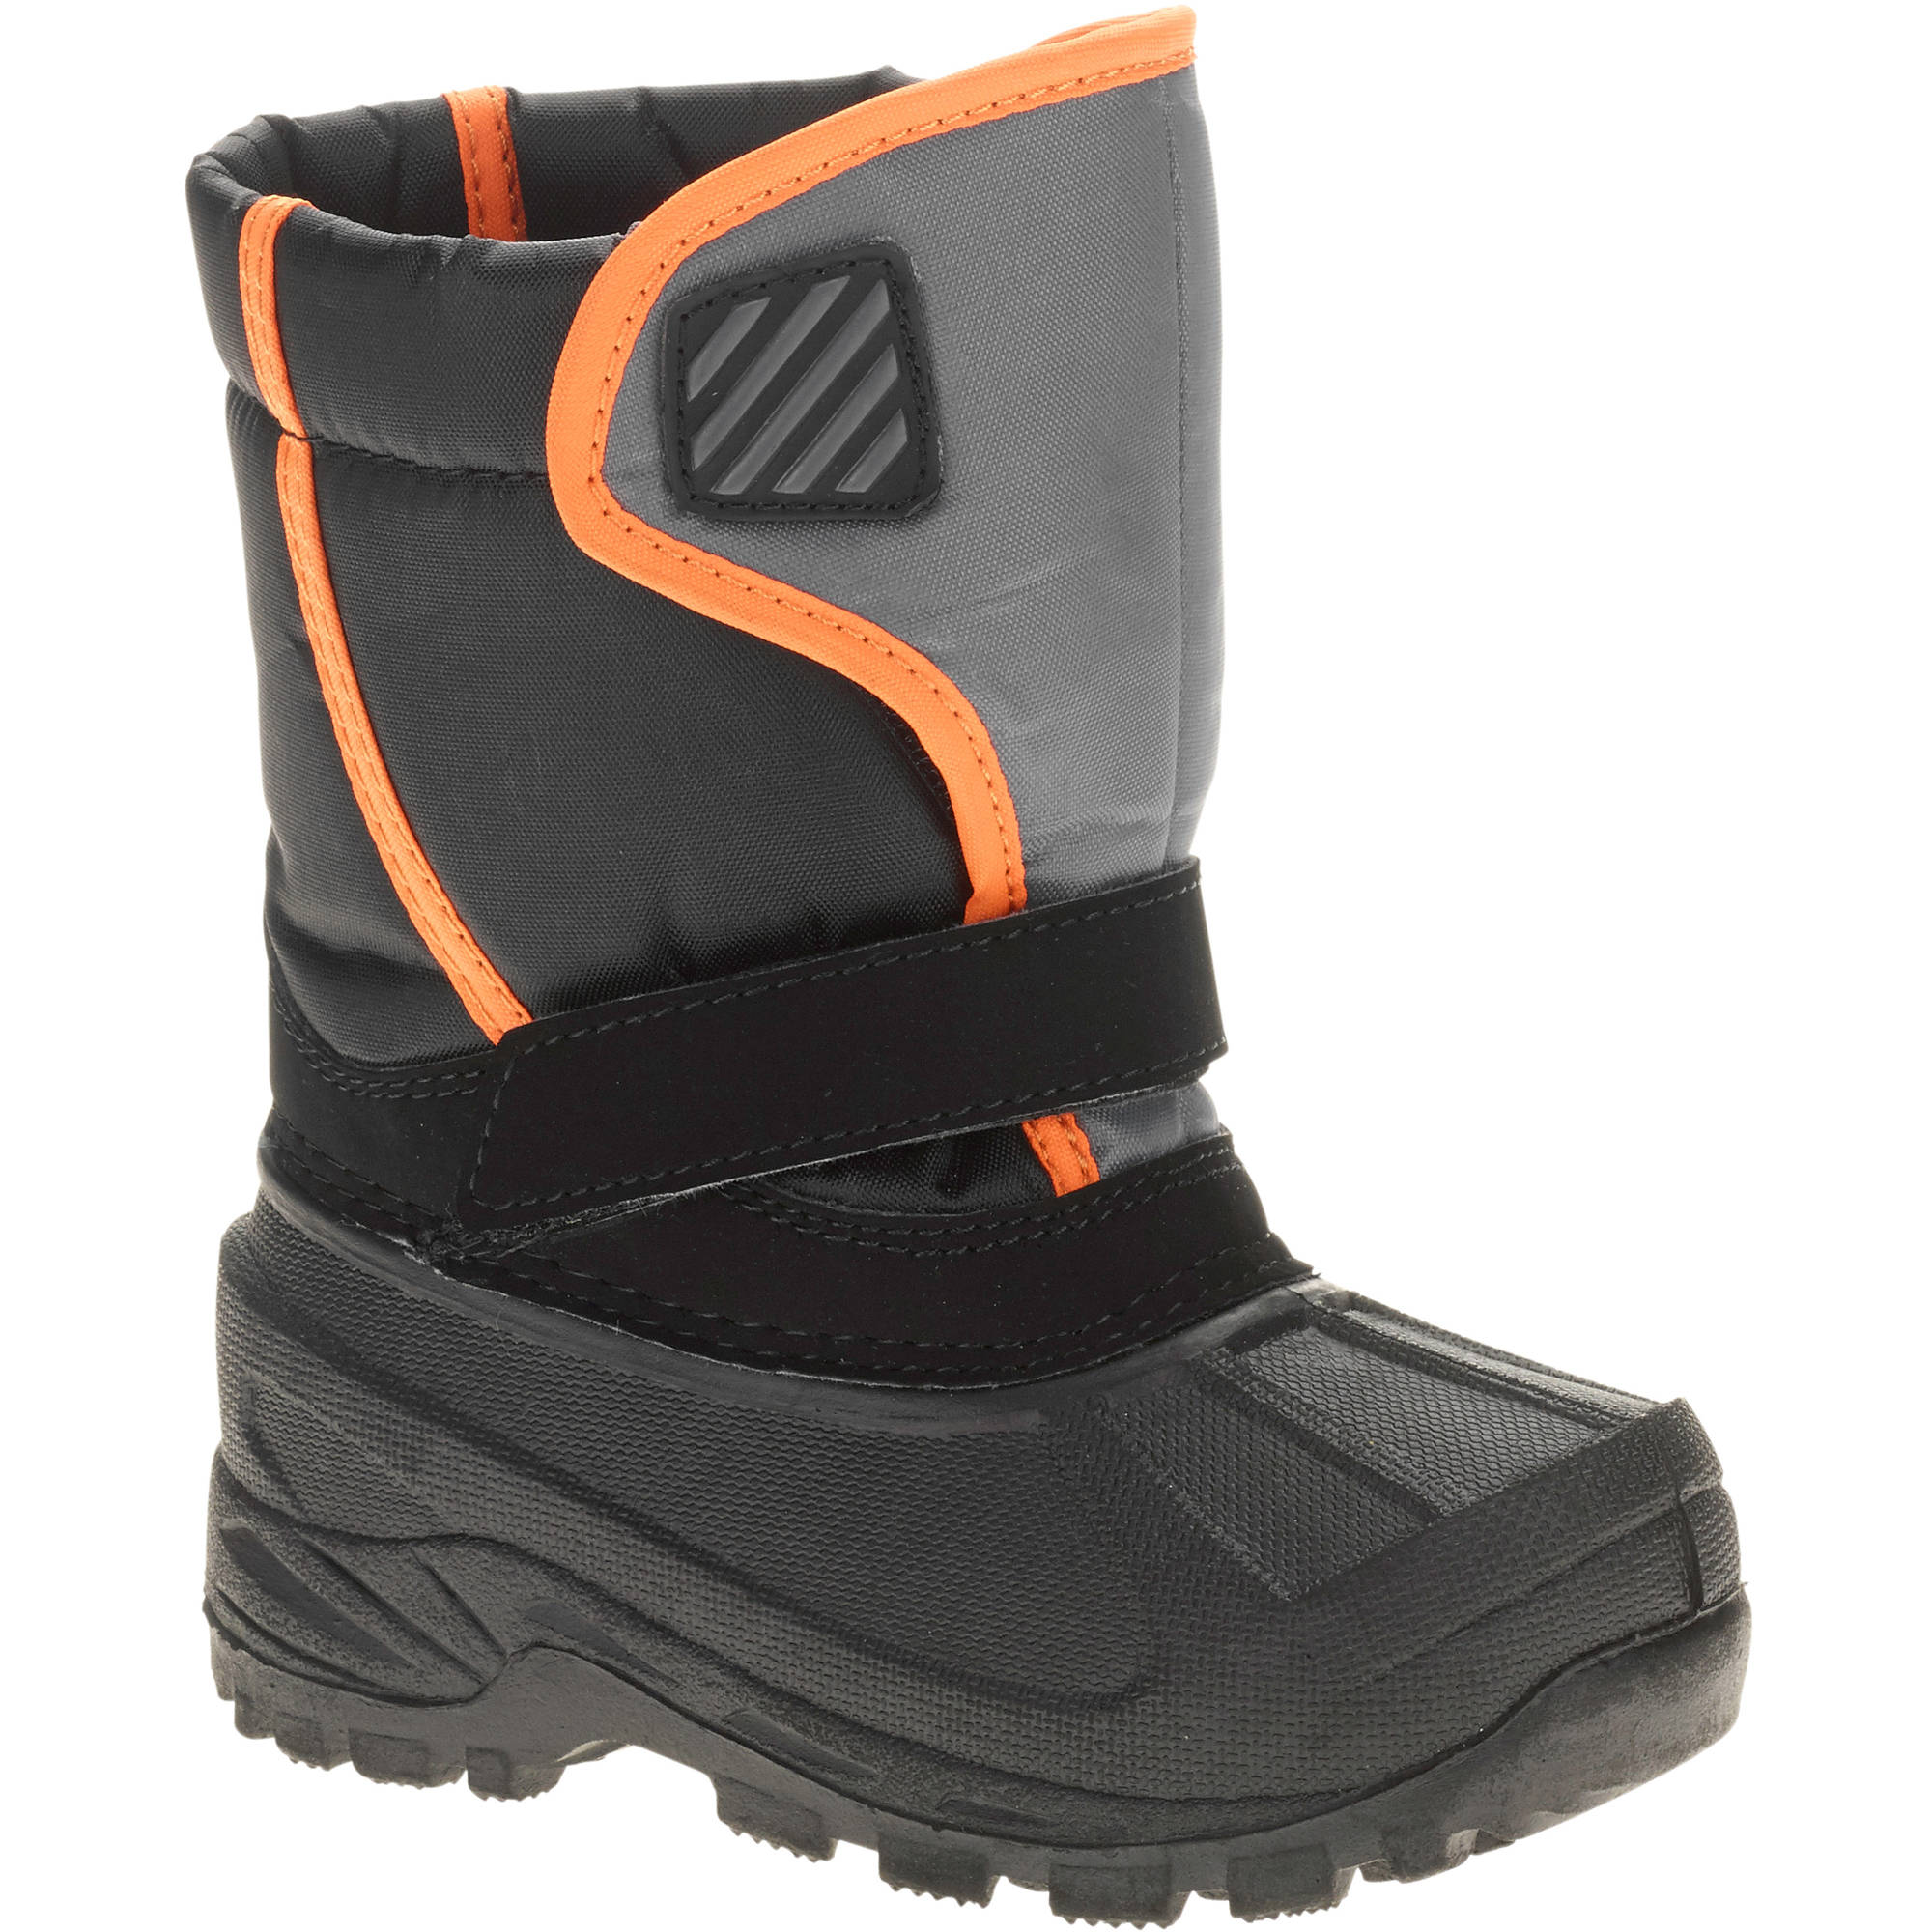 Toddler Boys' Classic Value Winter Boot